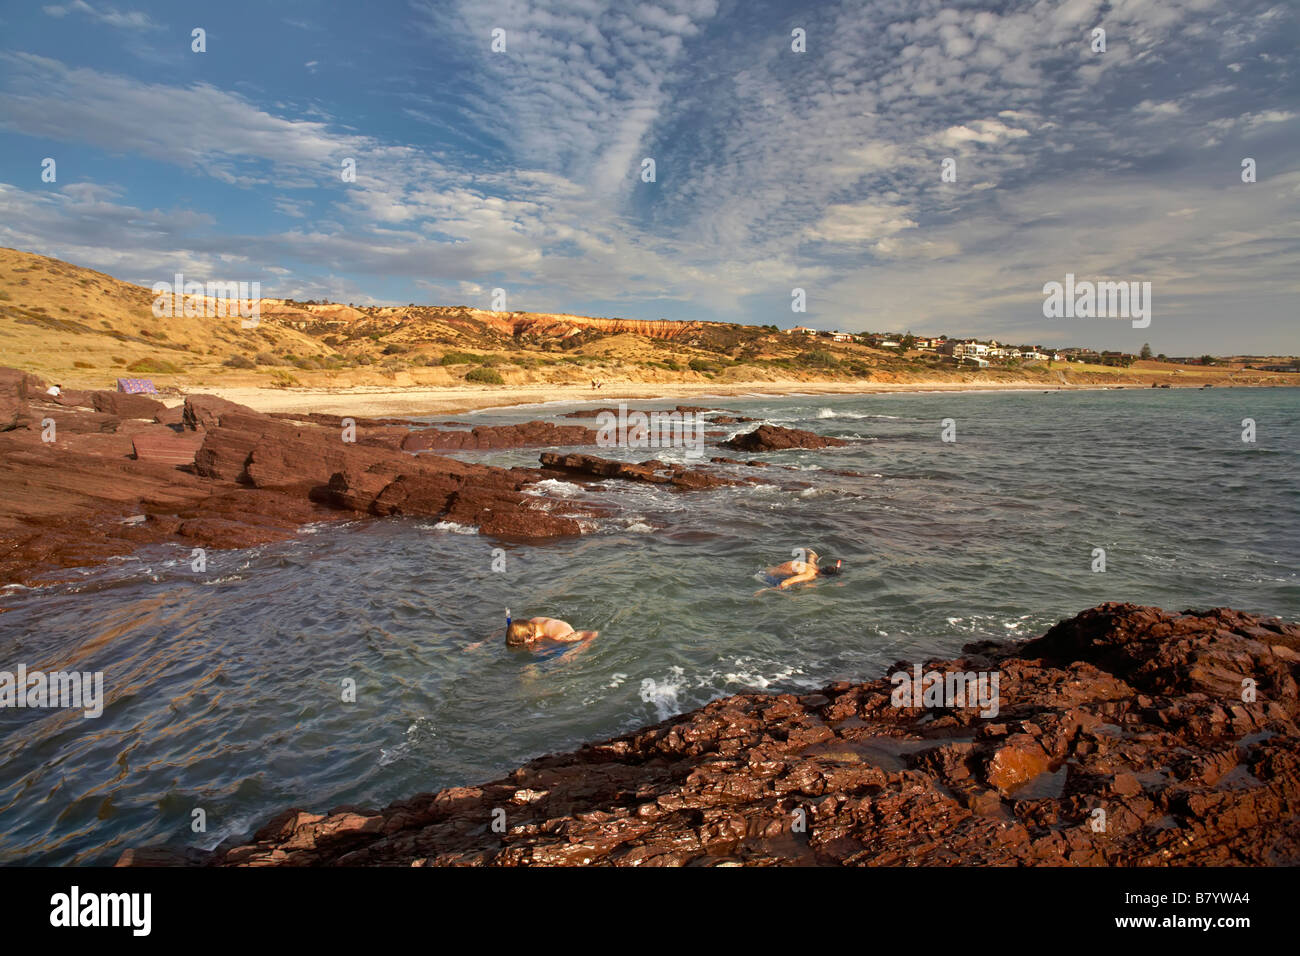 two boys snorkeling in the Shallows at Hallett Cove Stock Photo